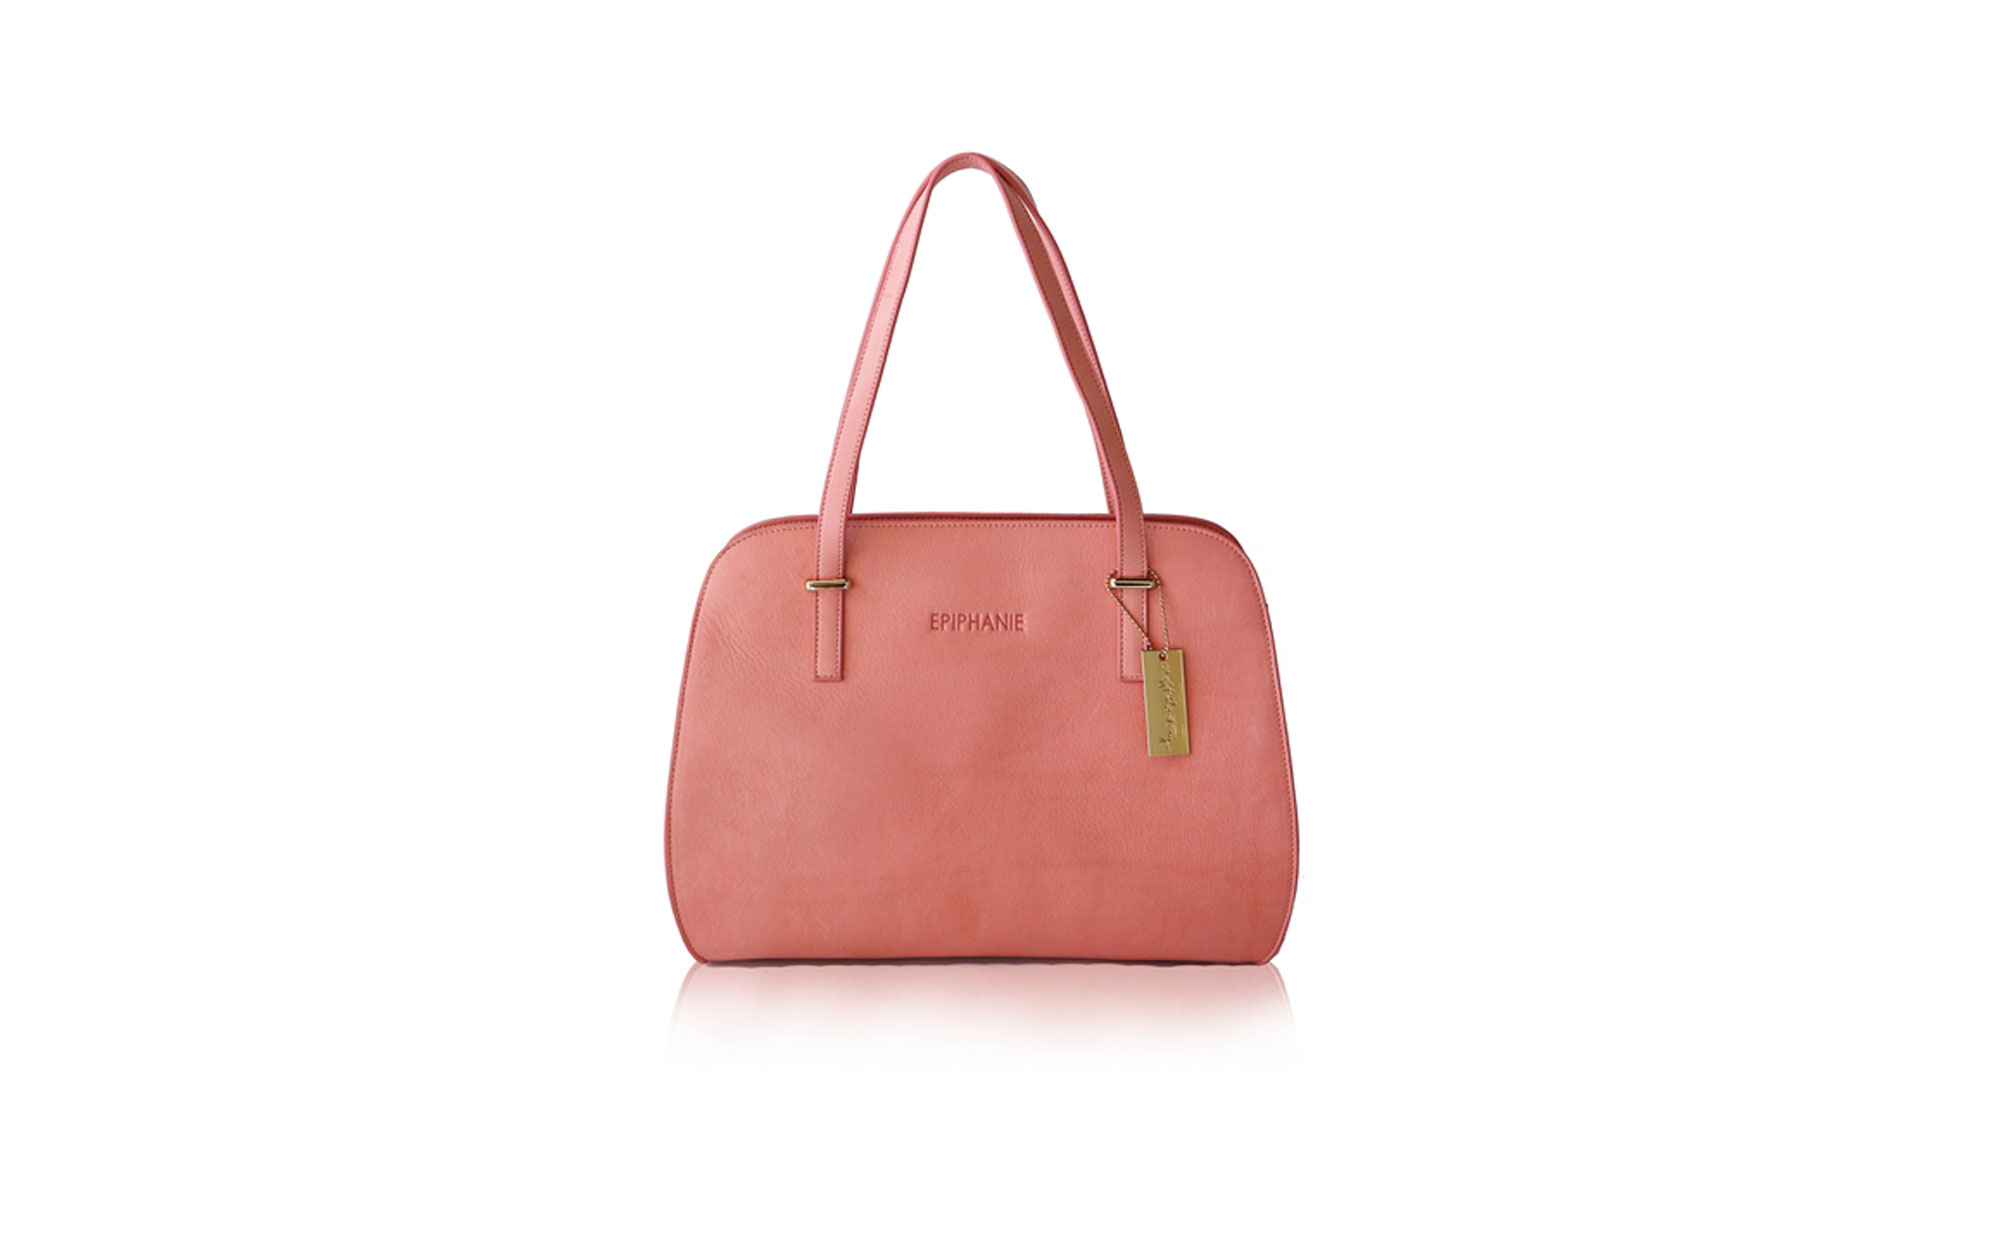 Camera Bags - Epiphanie Ali Edwards Blush